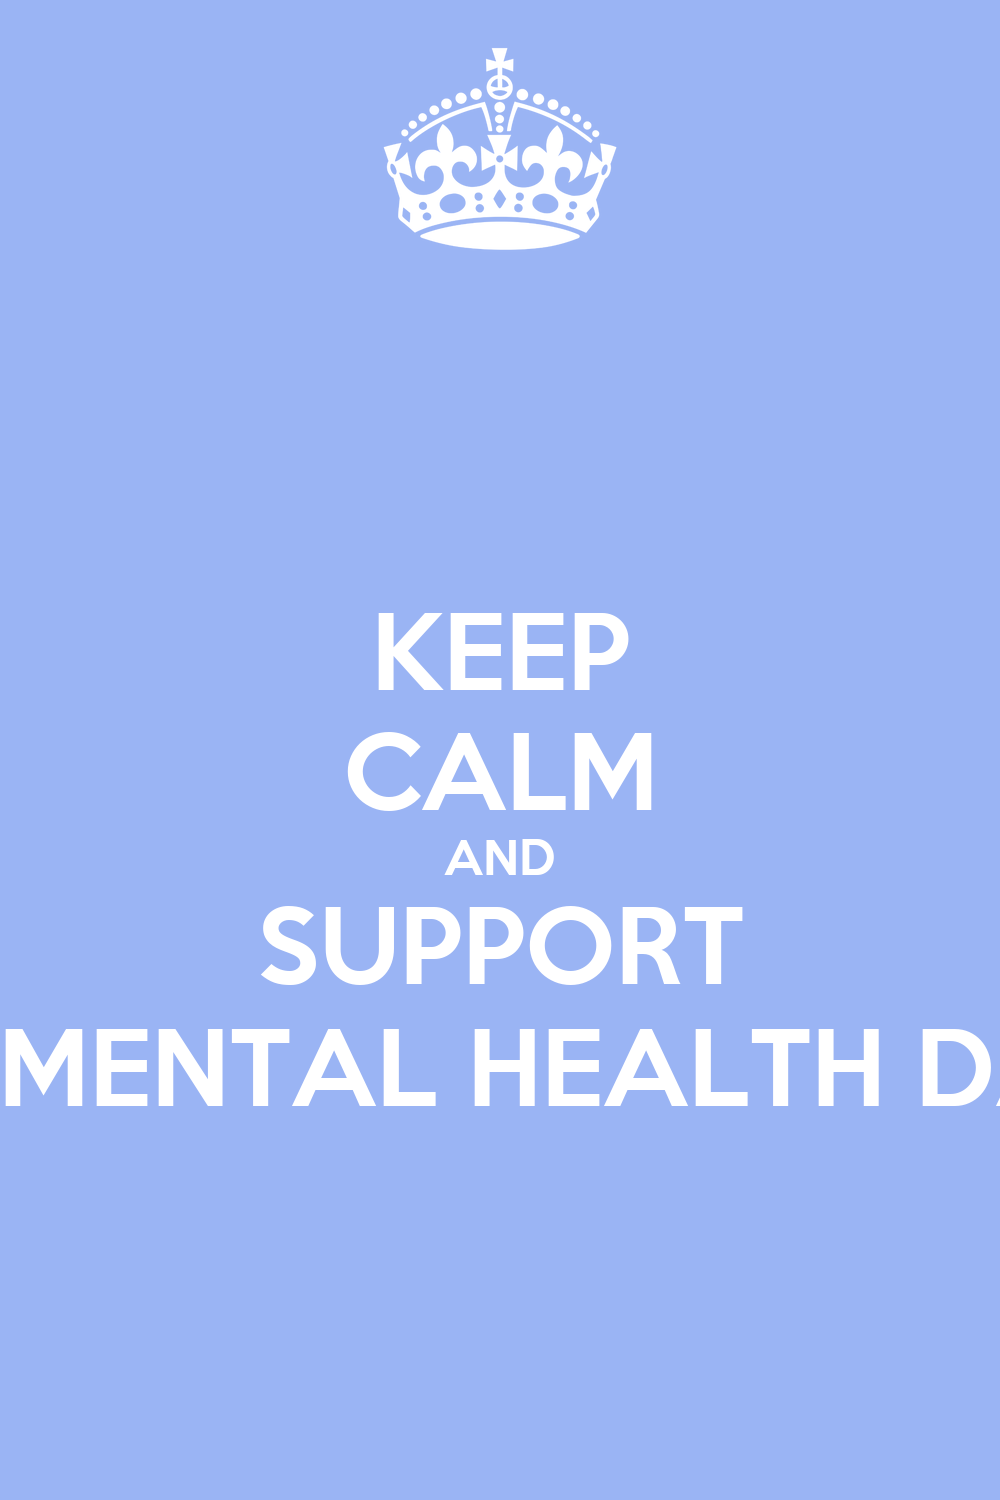 Maintain Mental Focus Now: KEEP CALM AND SUPPORT WORLD MENTAL HEALTH DAY 2014 Poster